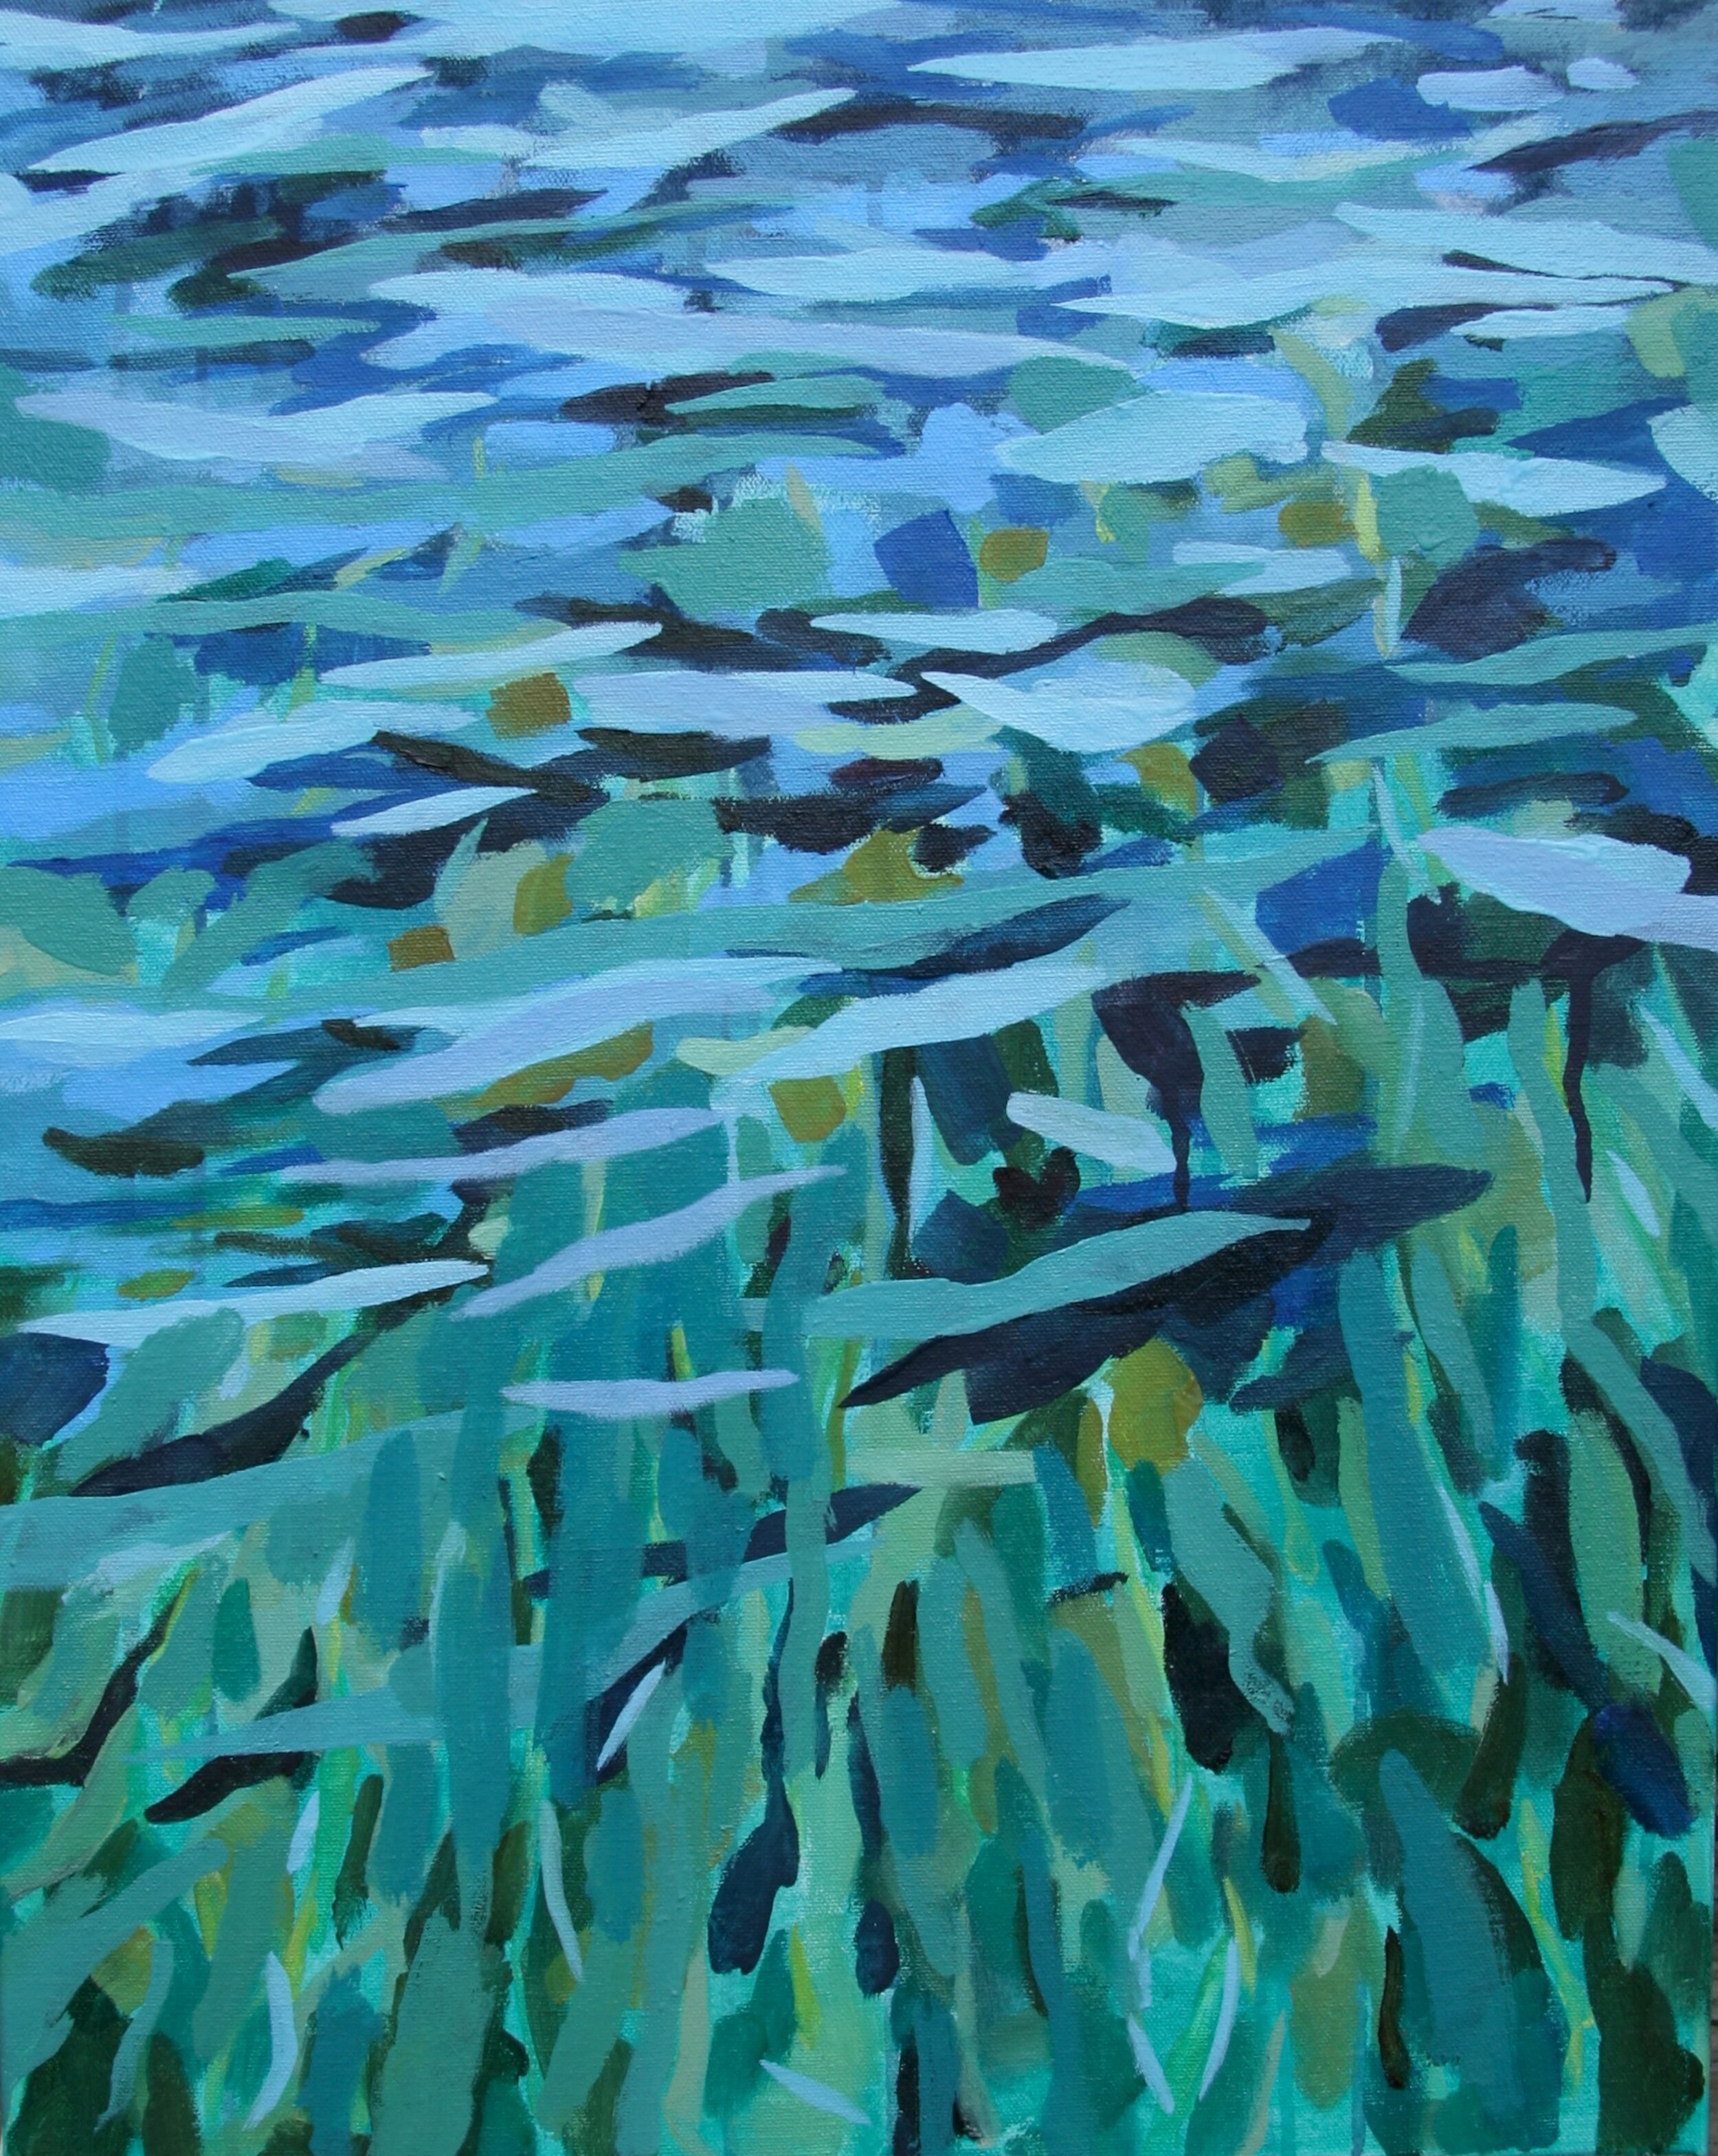 """'Undertow'  2014  16"""" x 20""""  water soluble oil on canvas  available"""